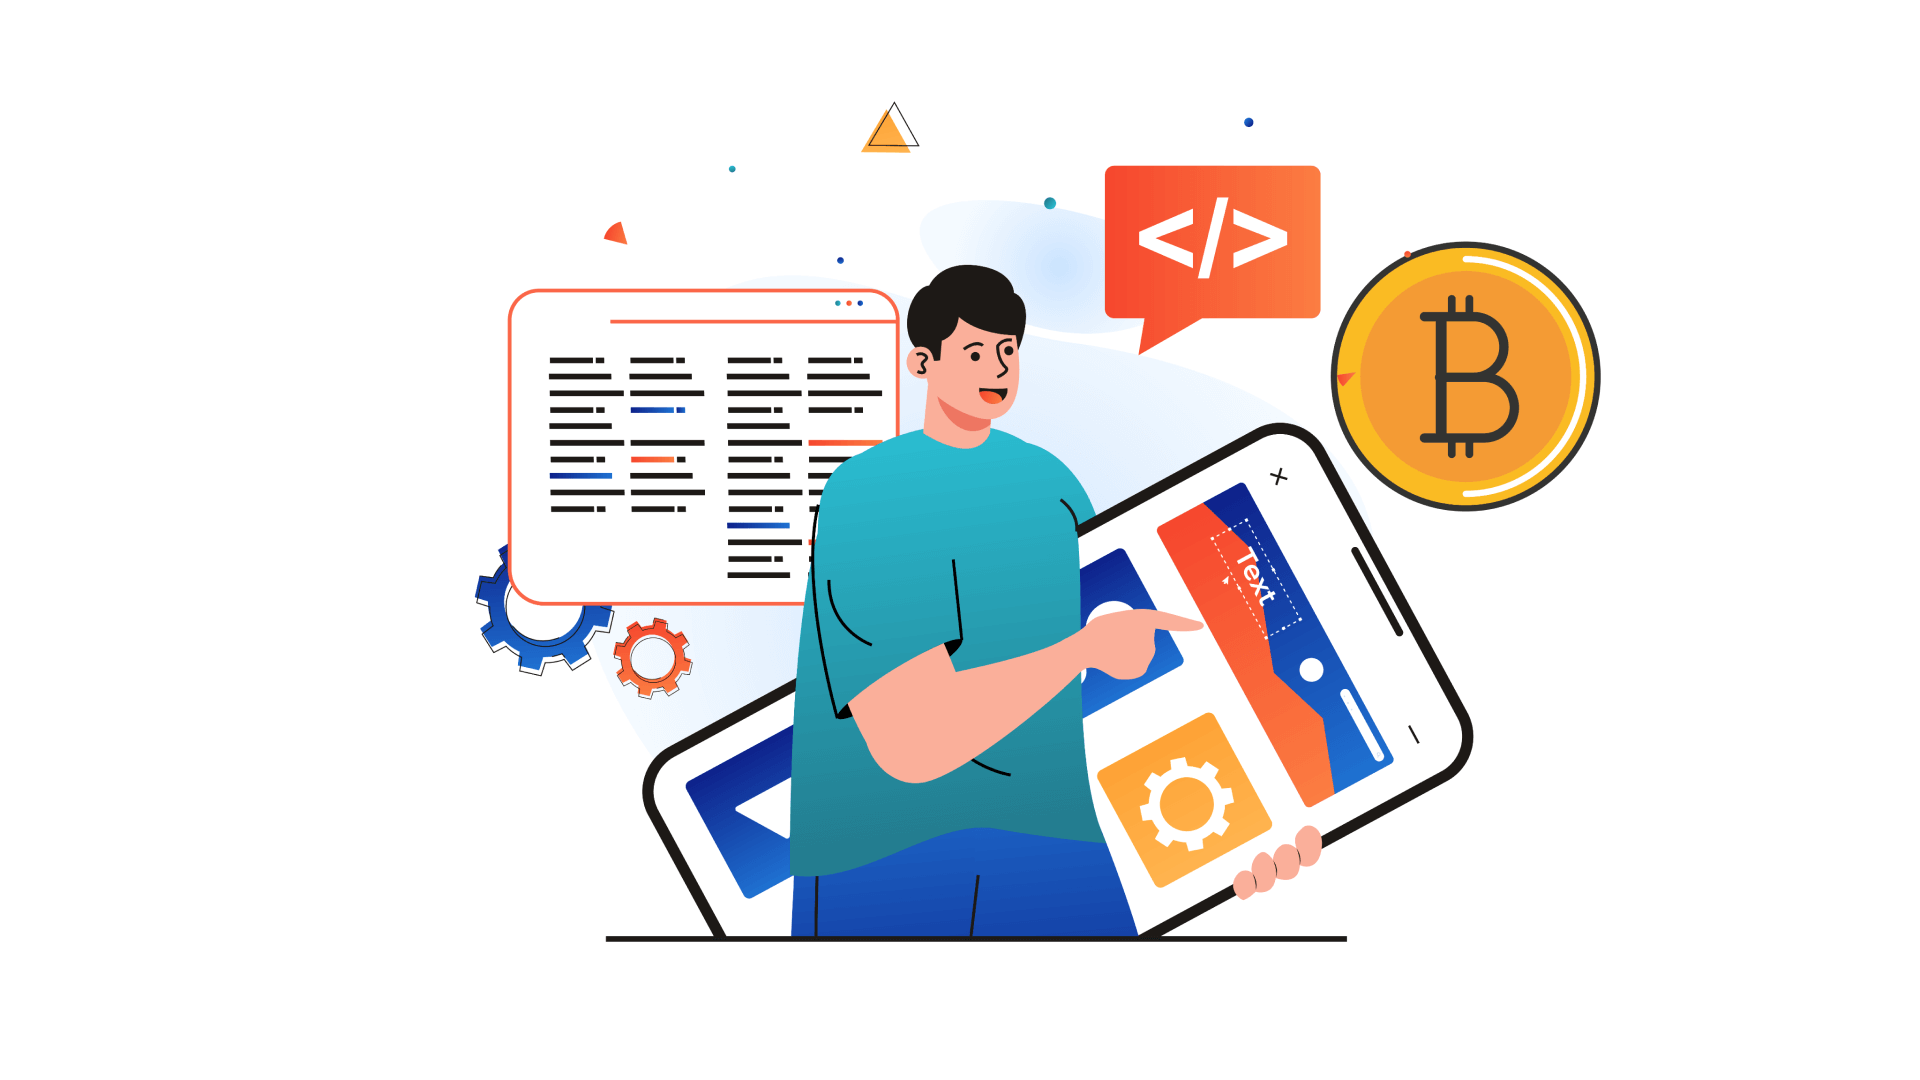 The proper allocation of resources is an essential step for a healthy blockchain app development process.